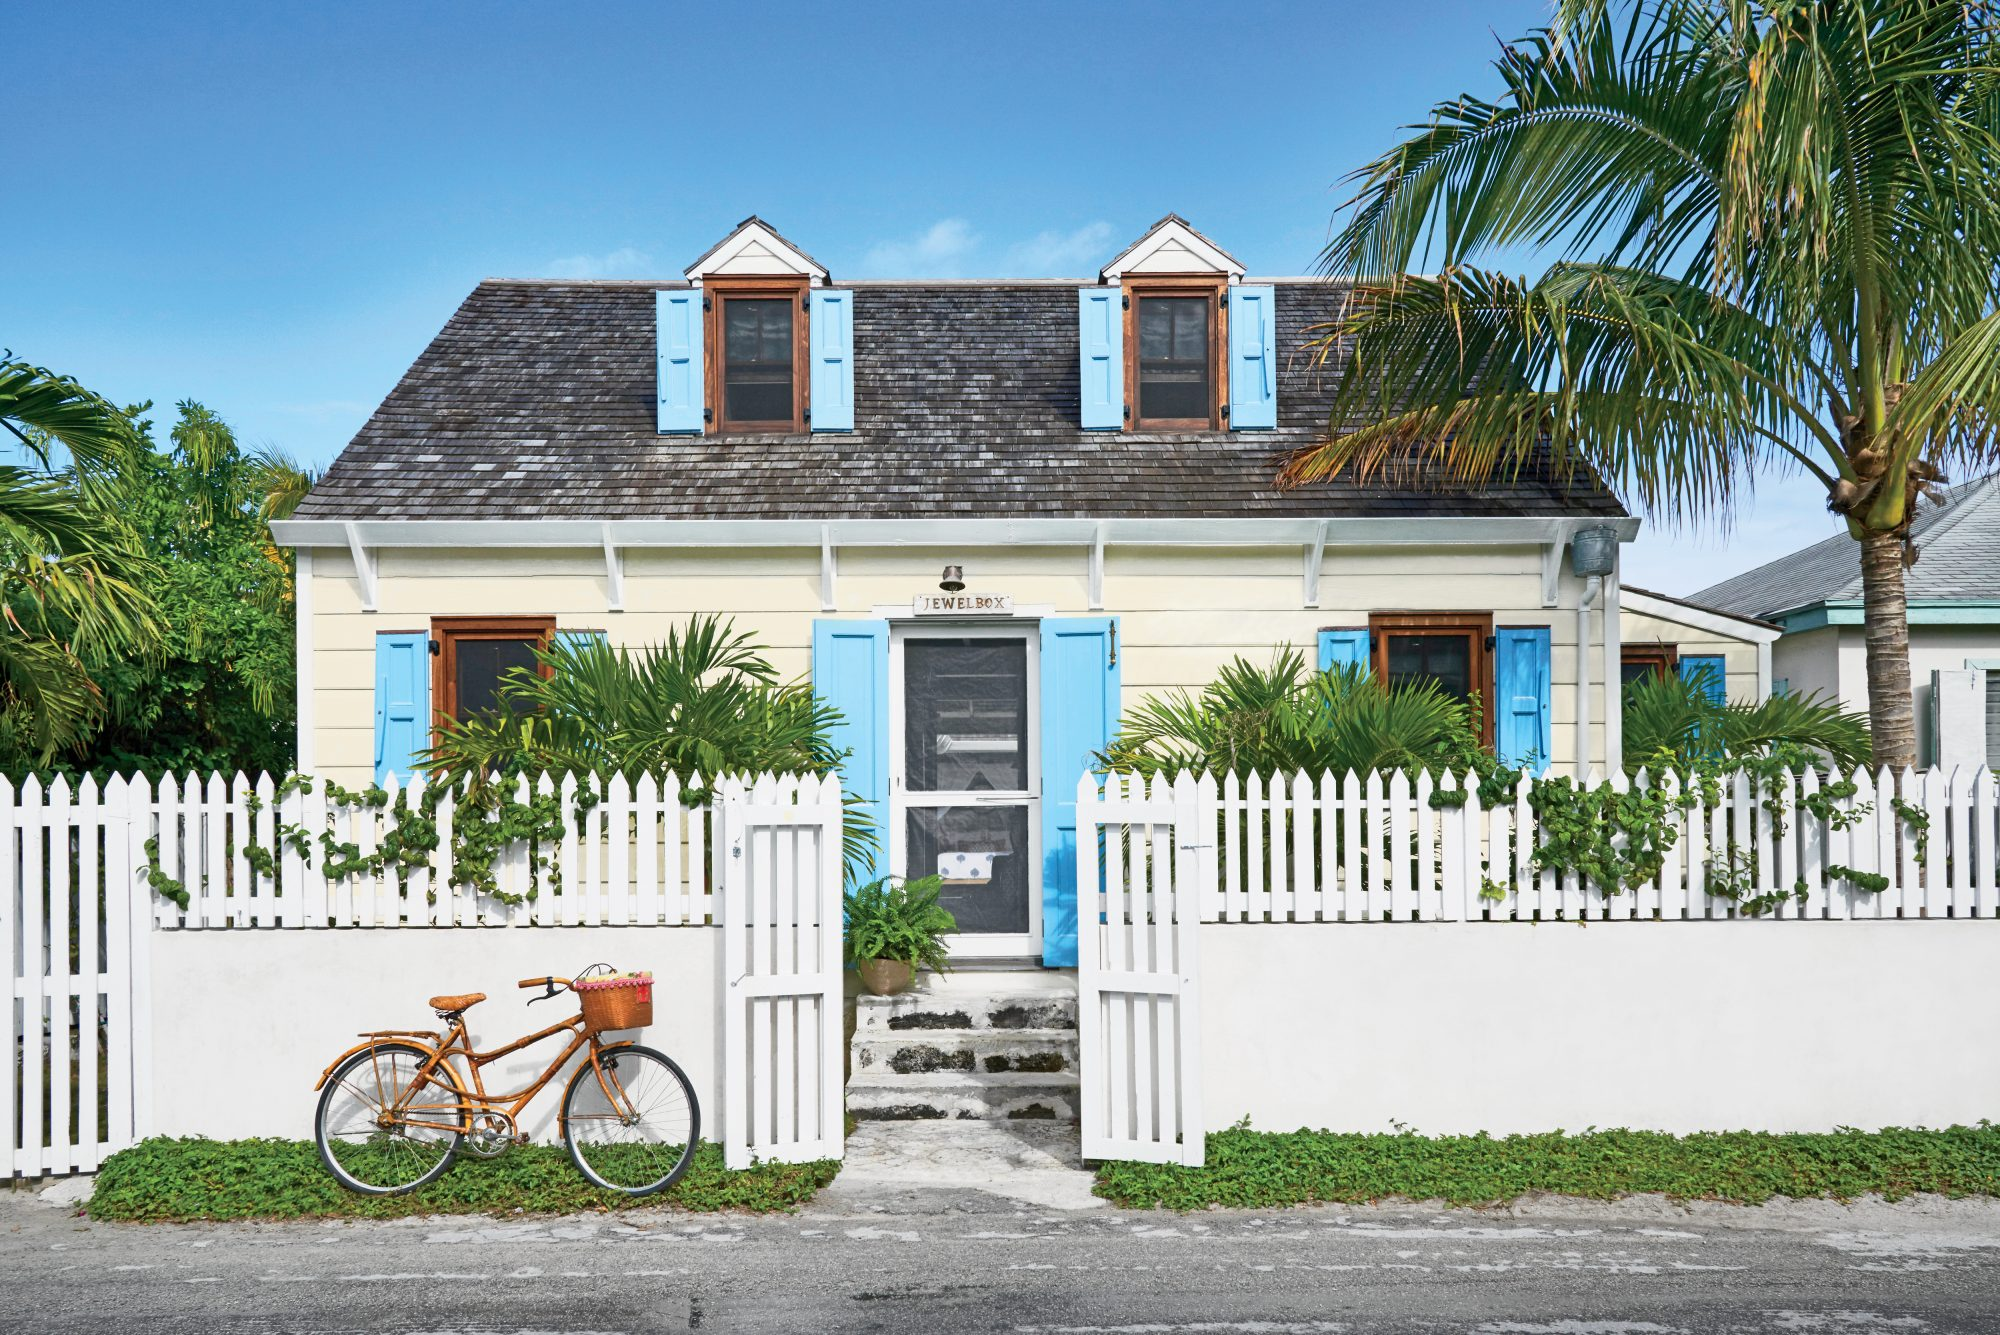 After careful restoration to keep its original integrity, this Harbour Island gem now exudes island style with its bright turquoise shutters, mahogany windows, and tropical landscaping.